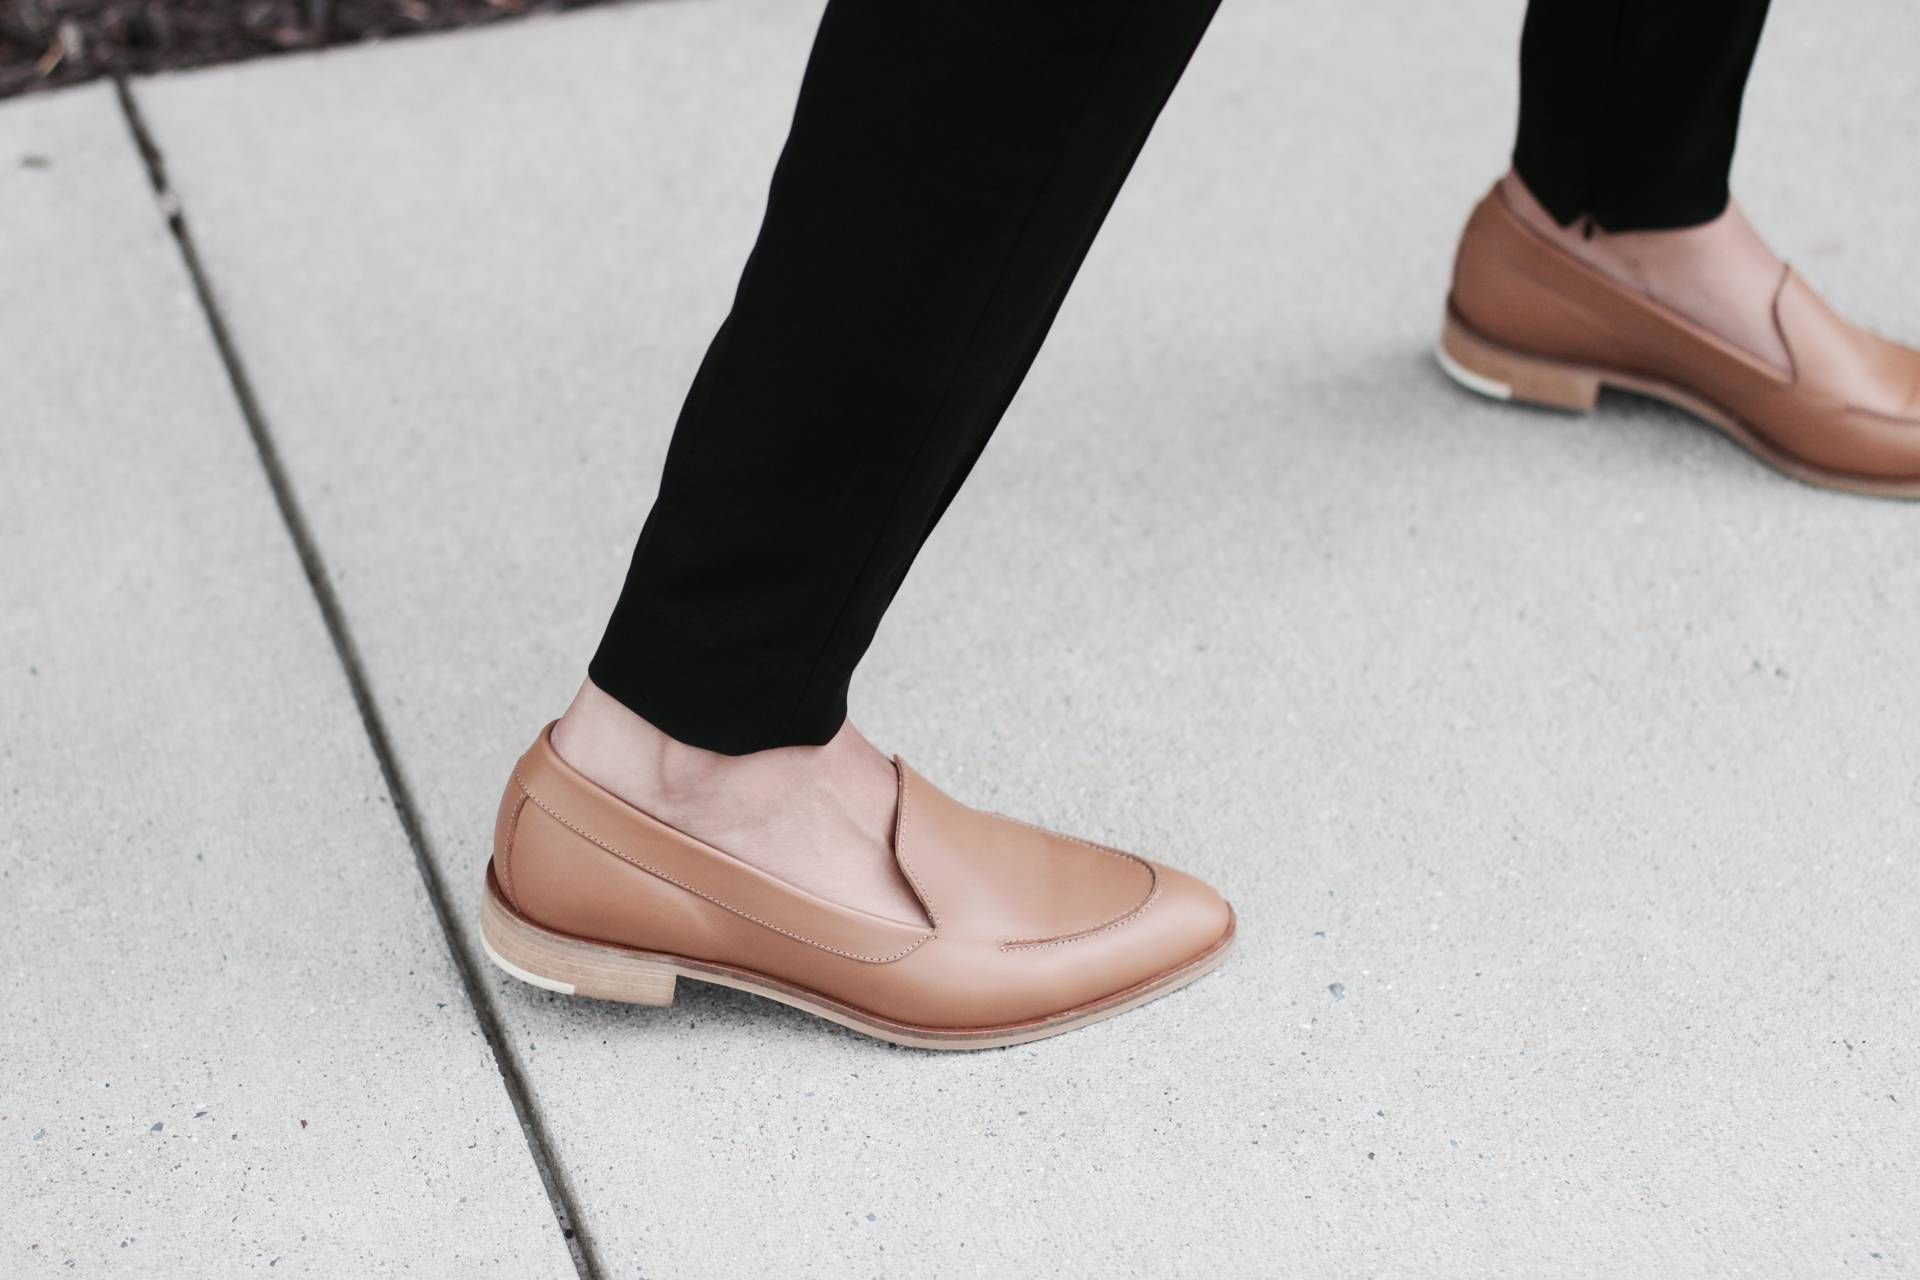 f9f2ad76091 Styling Loafers With Everlane